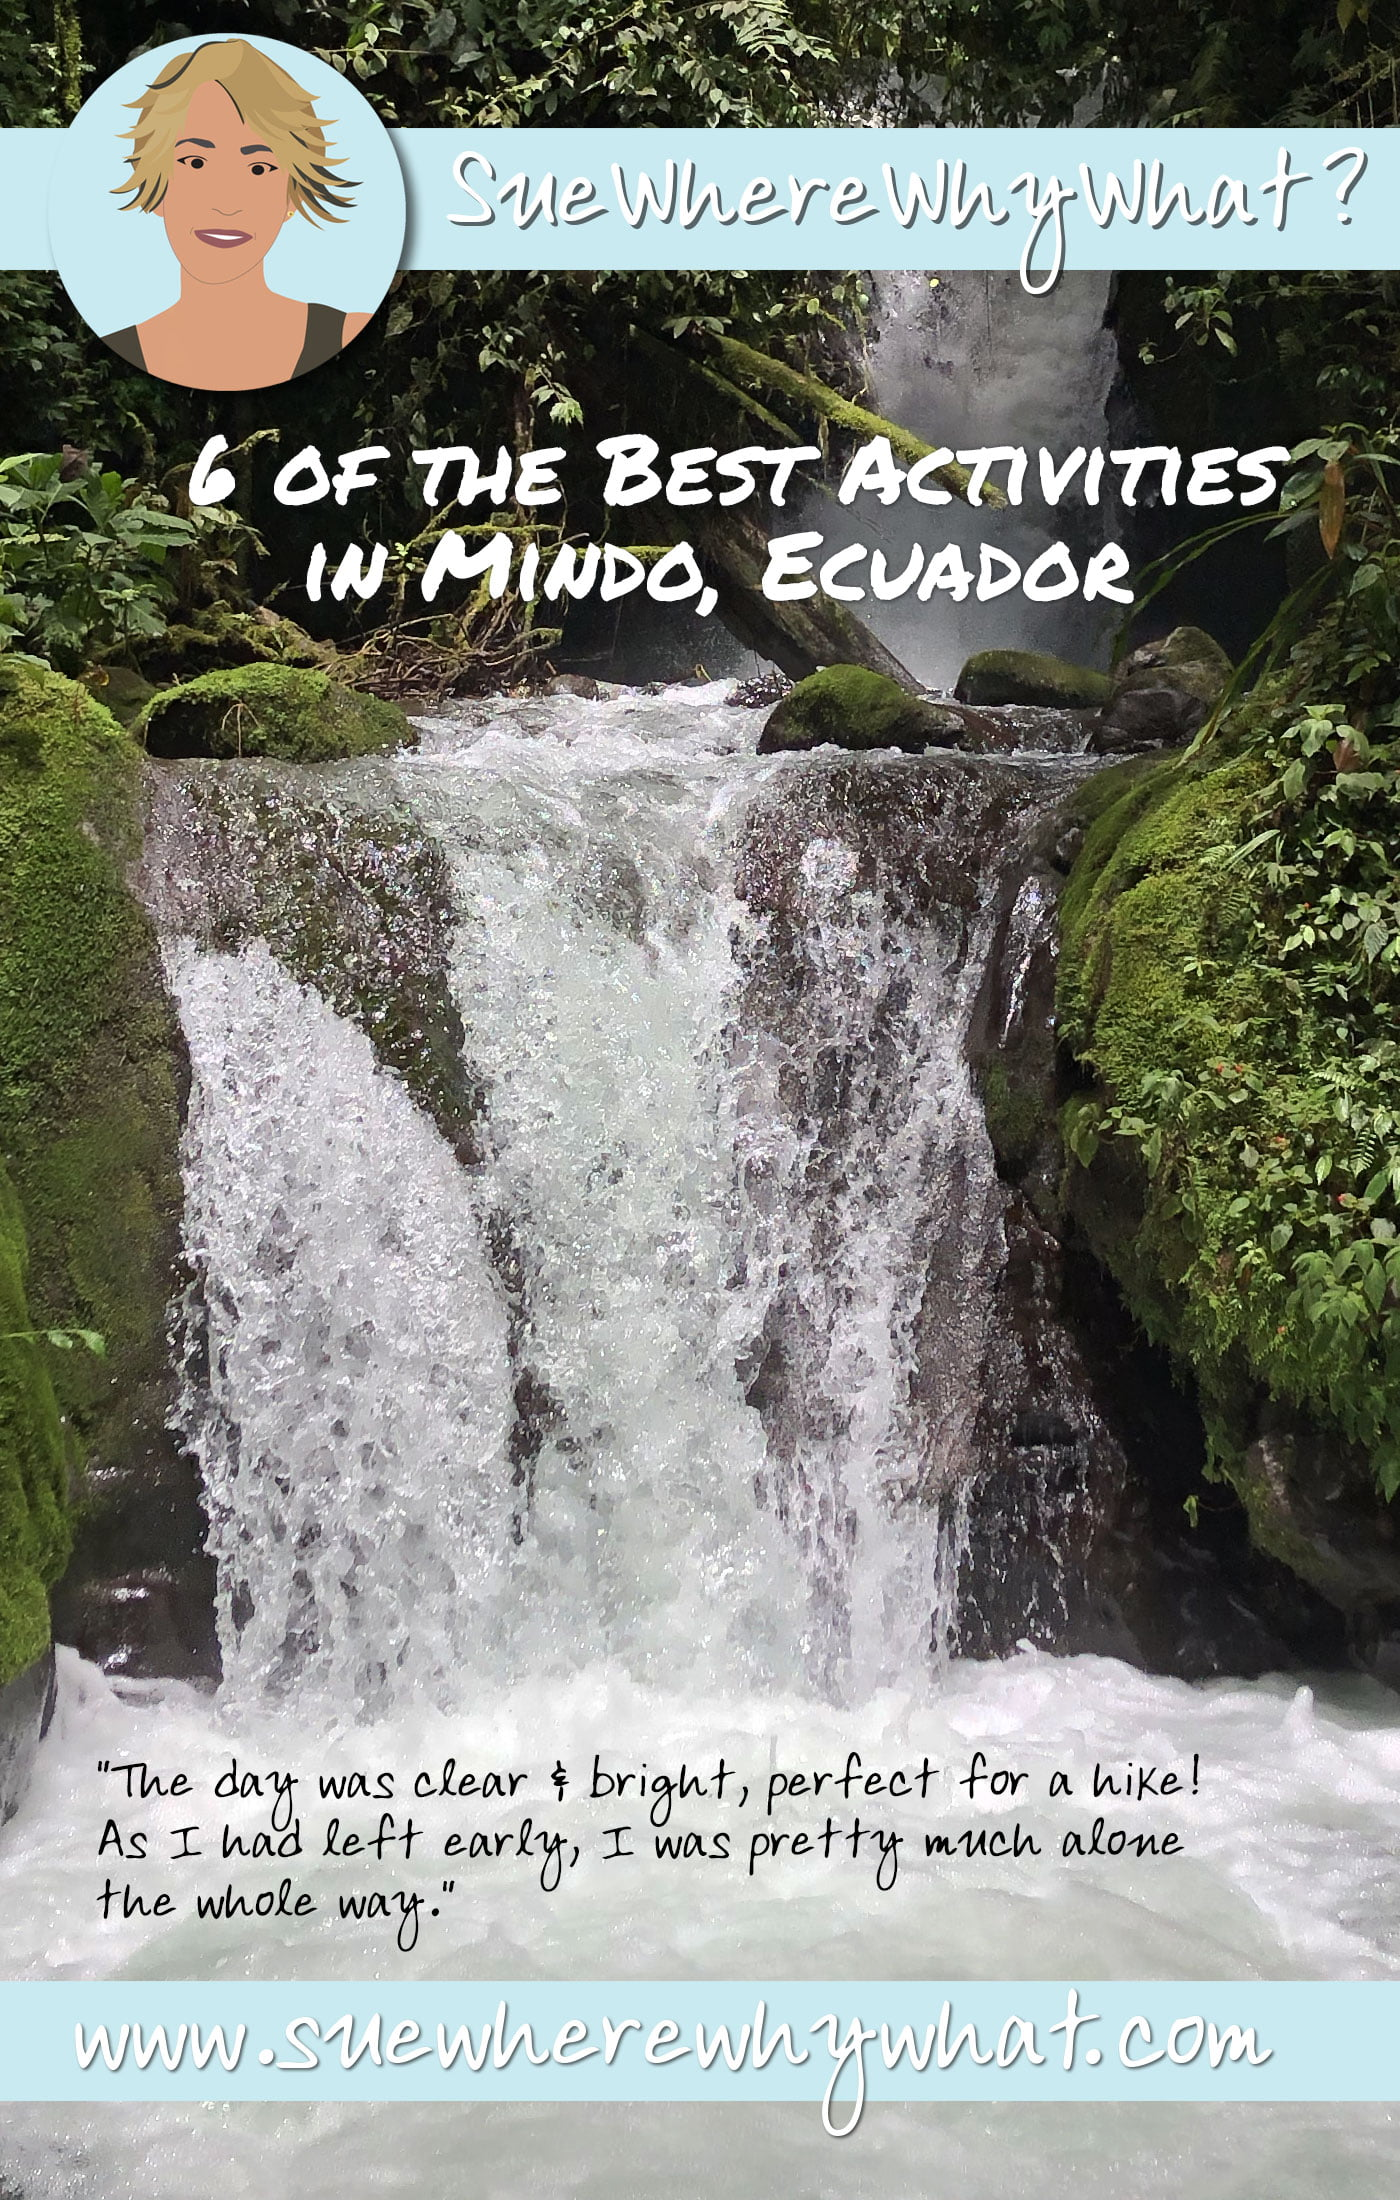 6 of the Best Activities in Mindo, Ecuador. Includes Artesan Chocolate Making, Butterfly Farm, Tarabita (Cable Car), Waterfall Hike, Night Walk & Bird Watching.